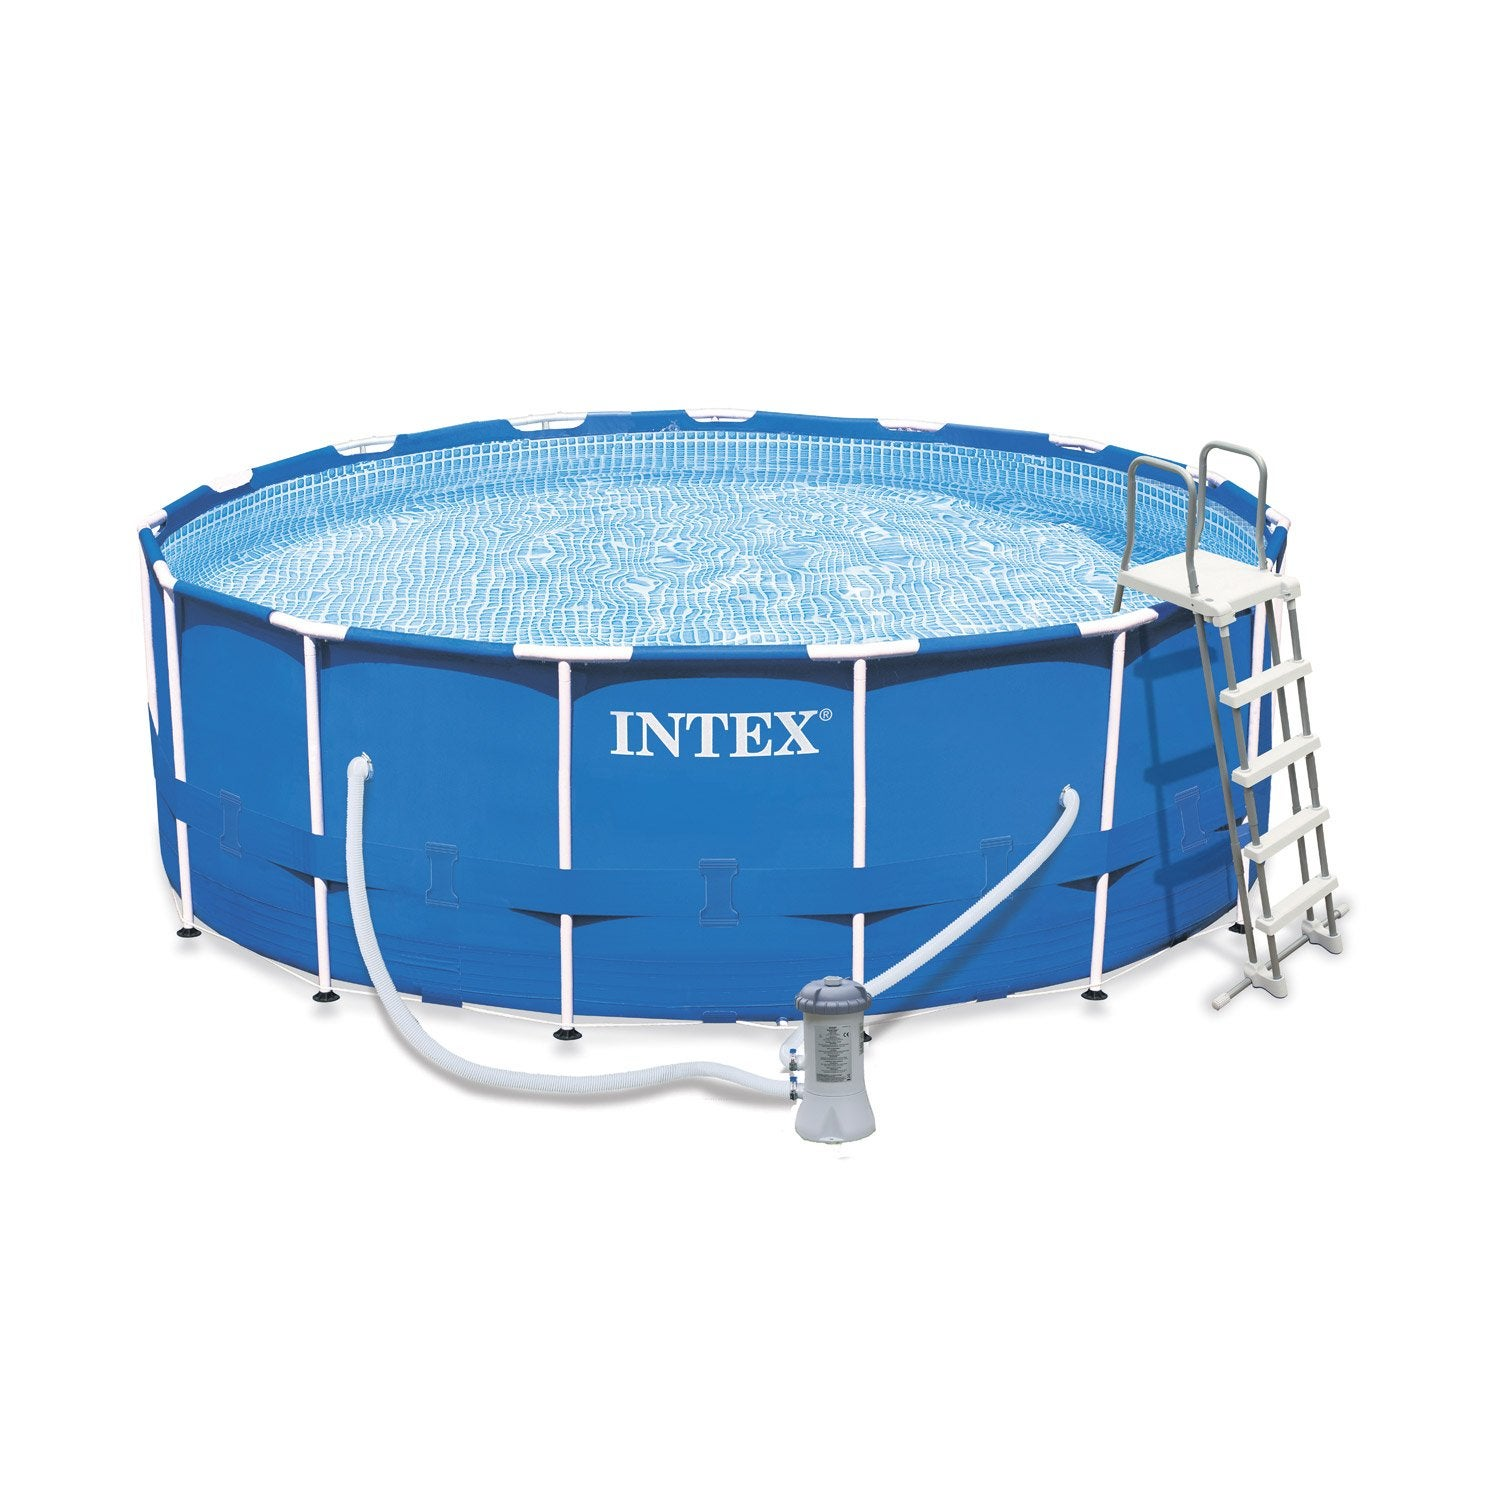 Piscine hors sol autoportante tubulaire metal frame intex for Piscine hors sol imposable